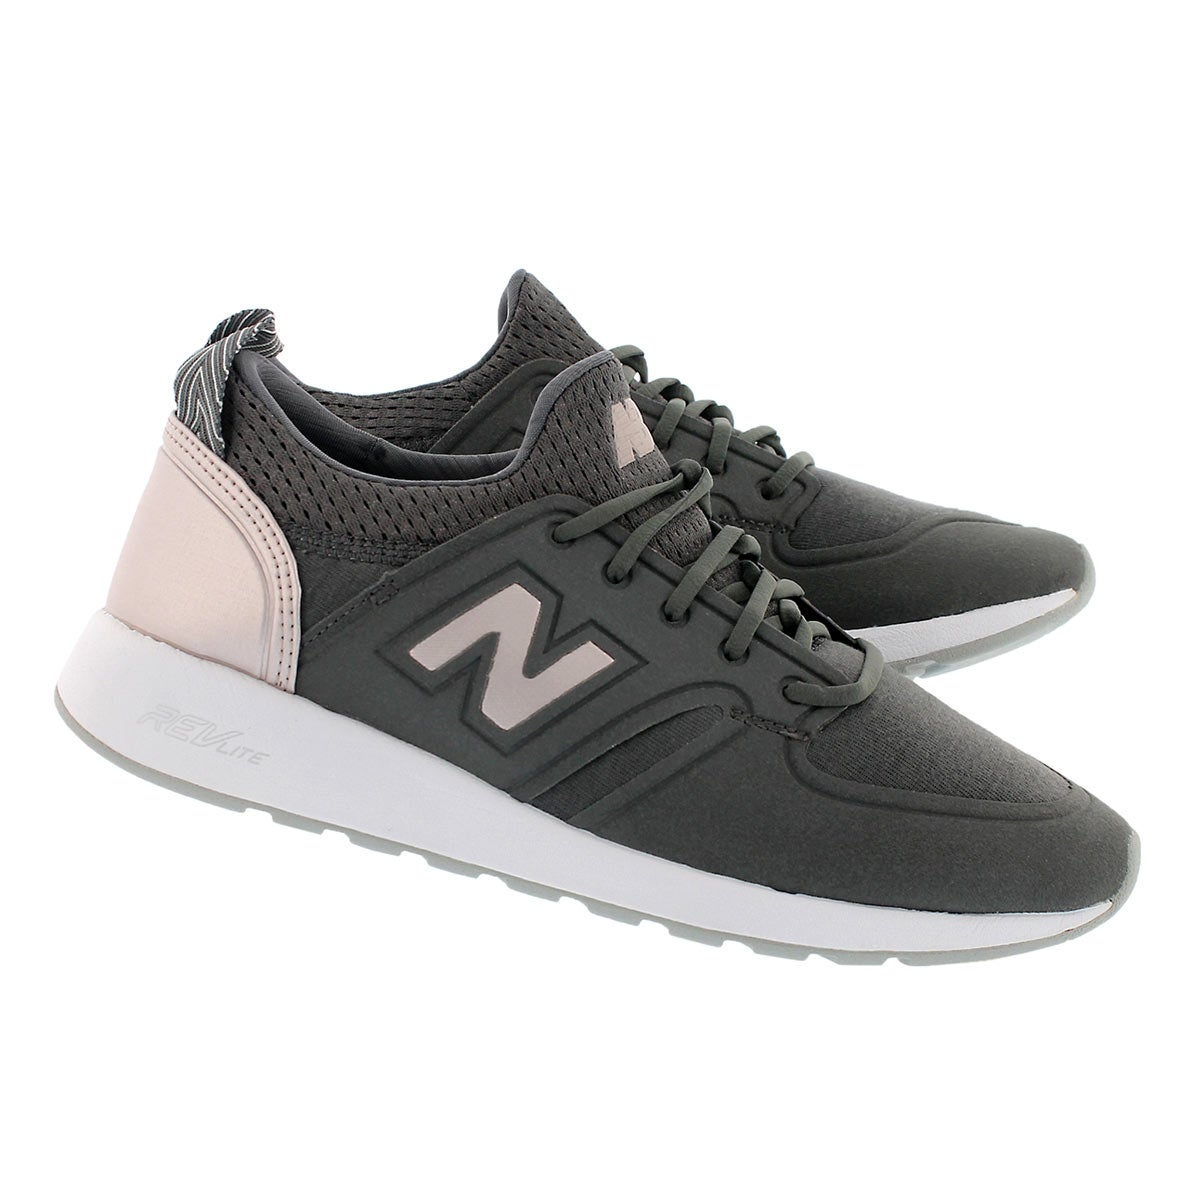 Lds 420 mgnt/champ mtlc lace up sneaker